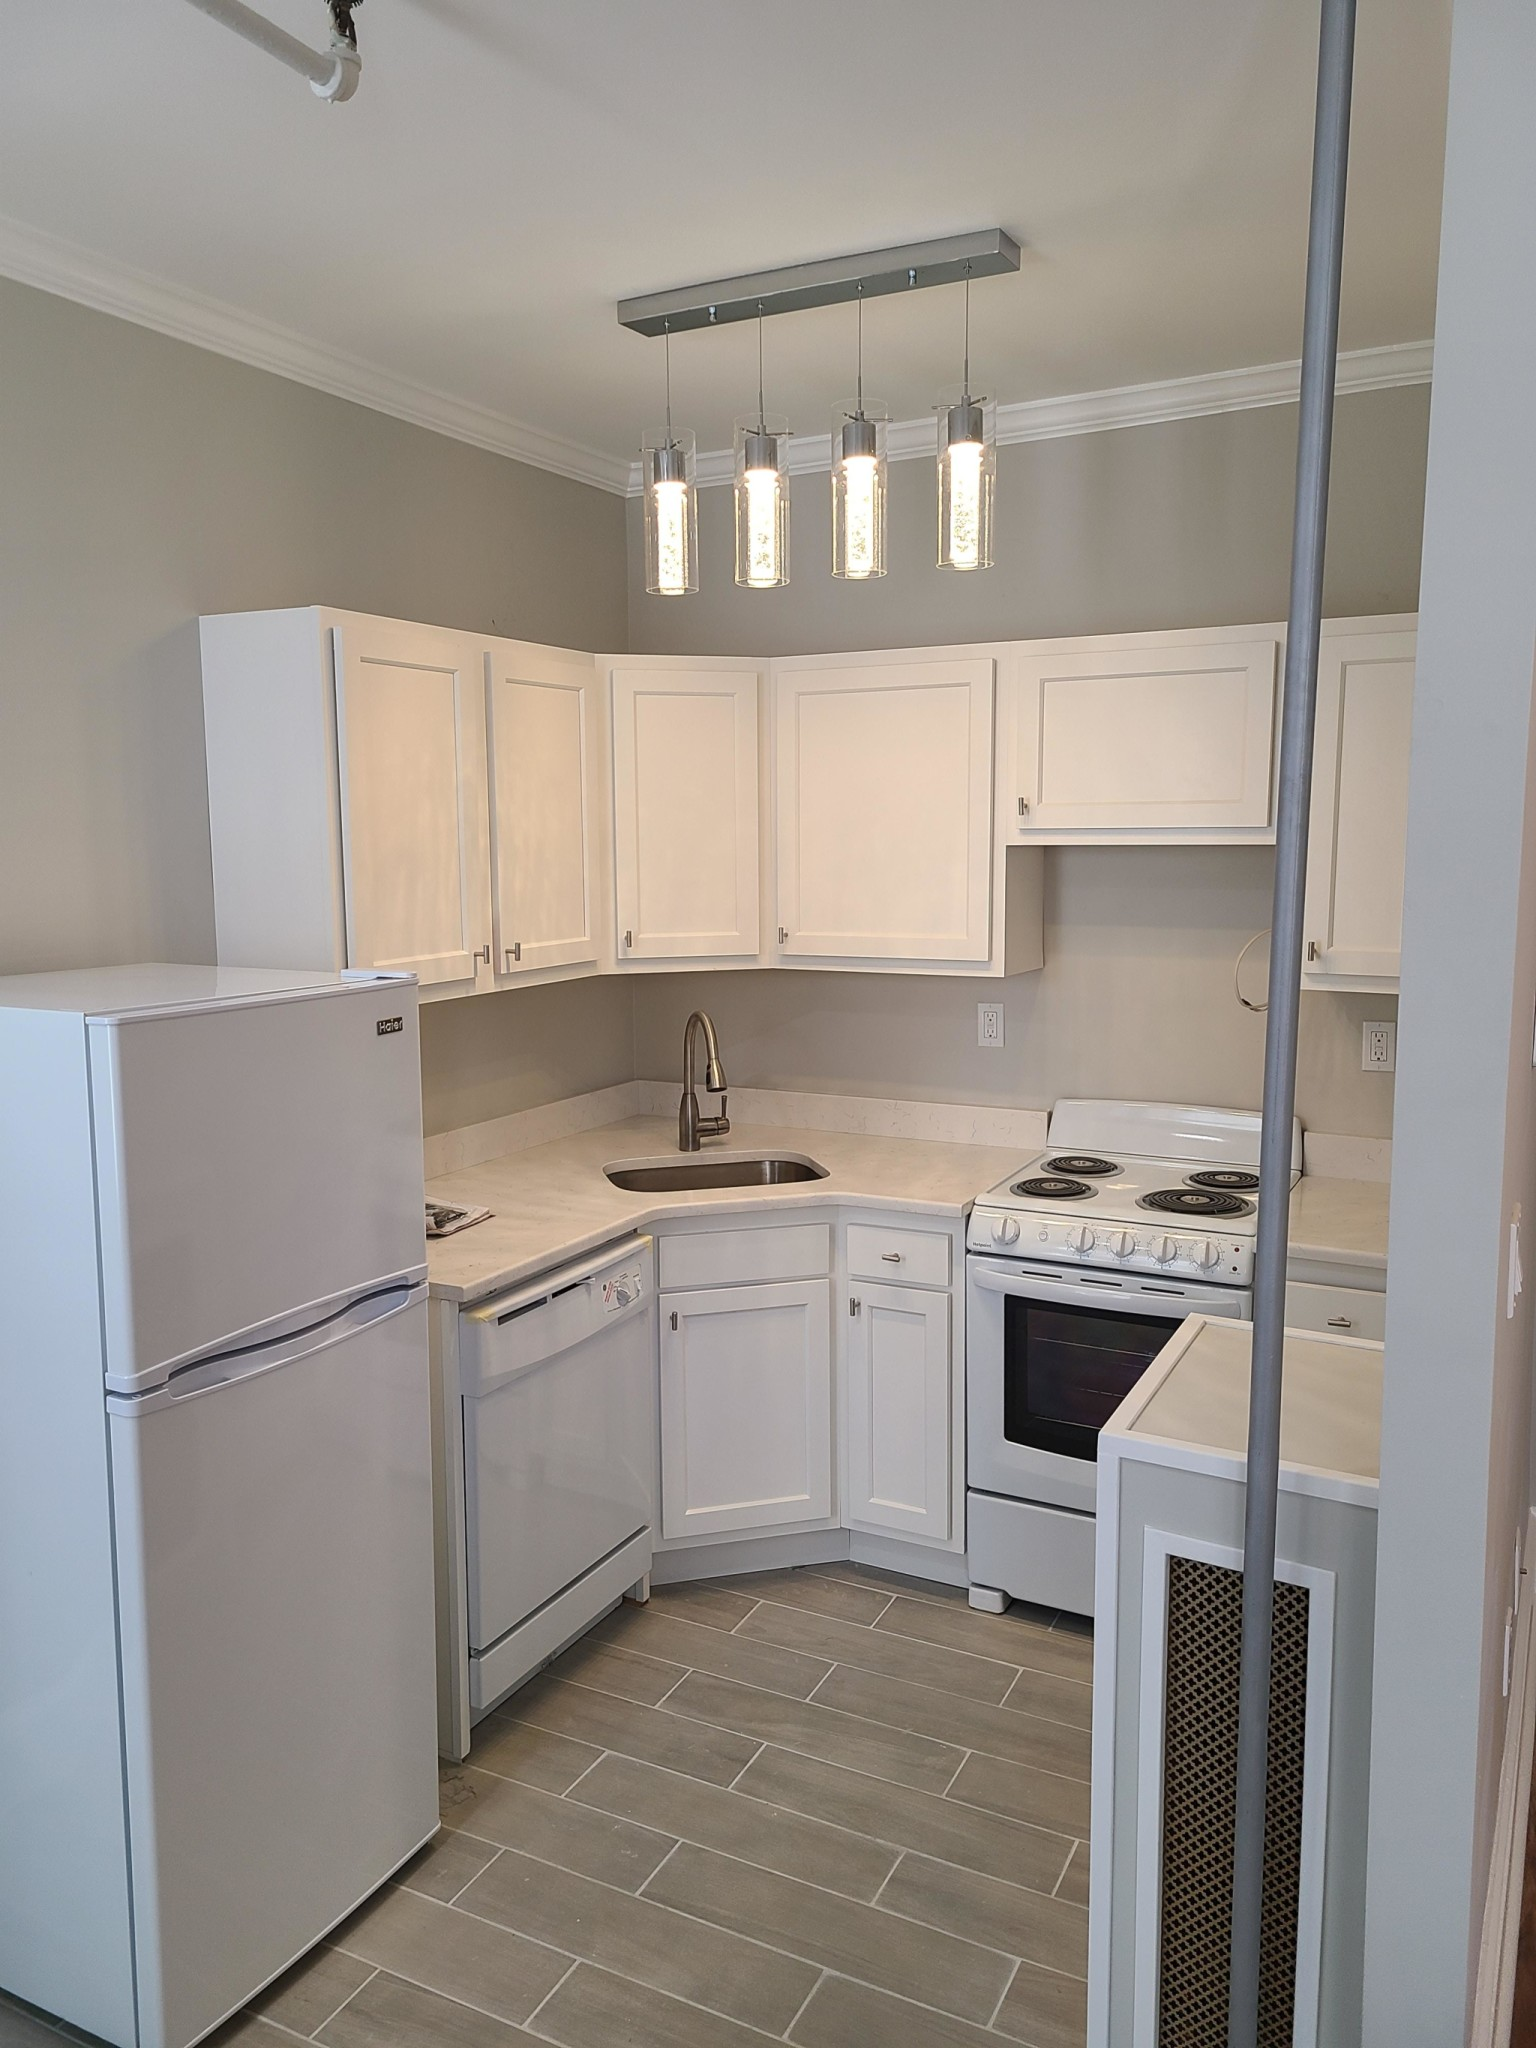 1 Bed, 1 Bath apartment in Boston, Allston for $1,975